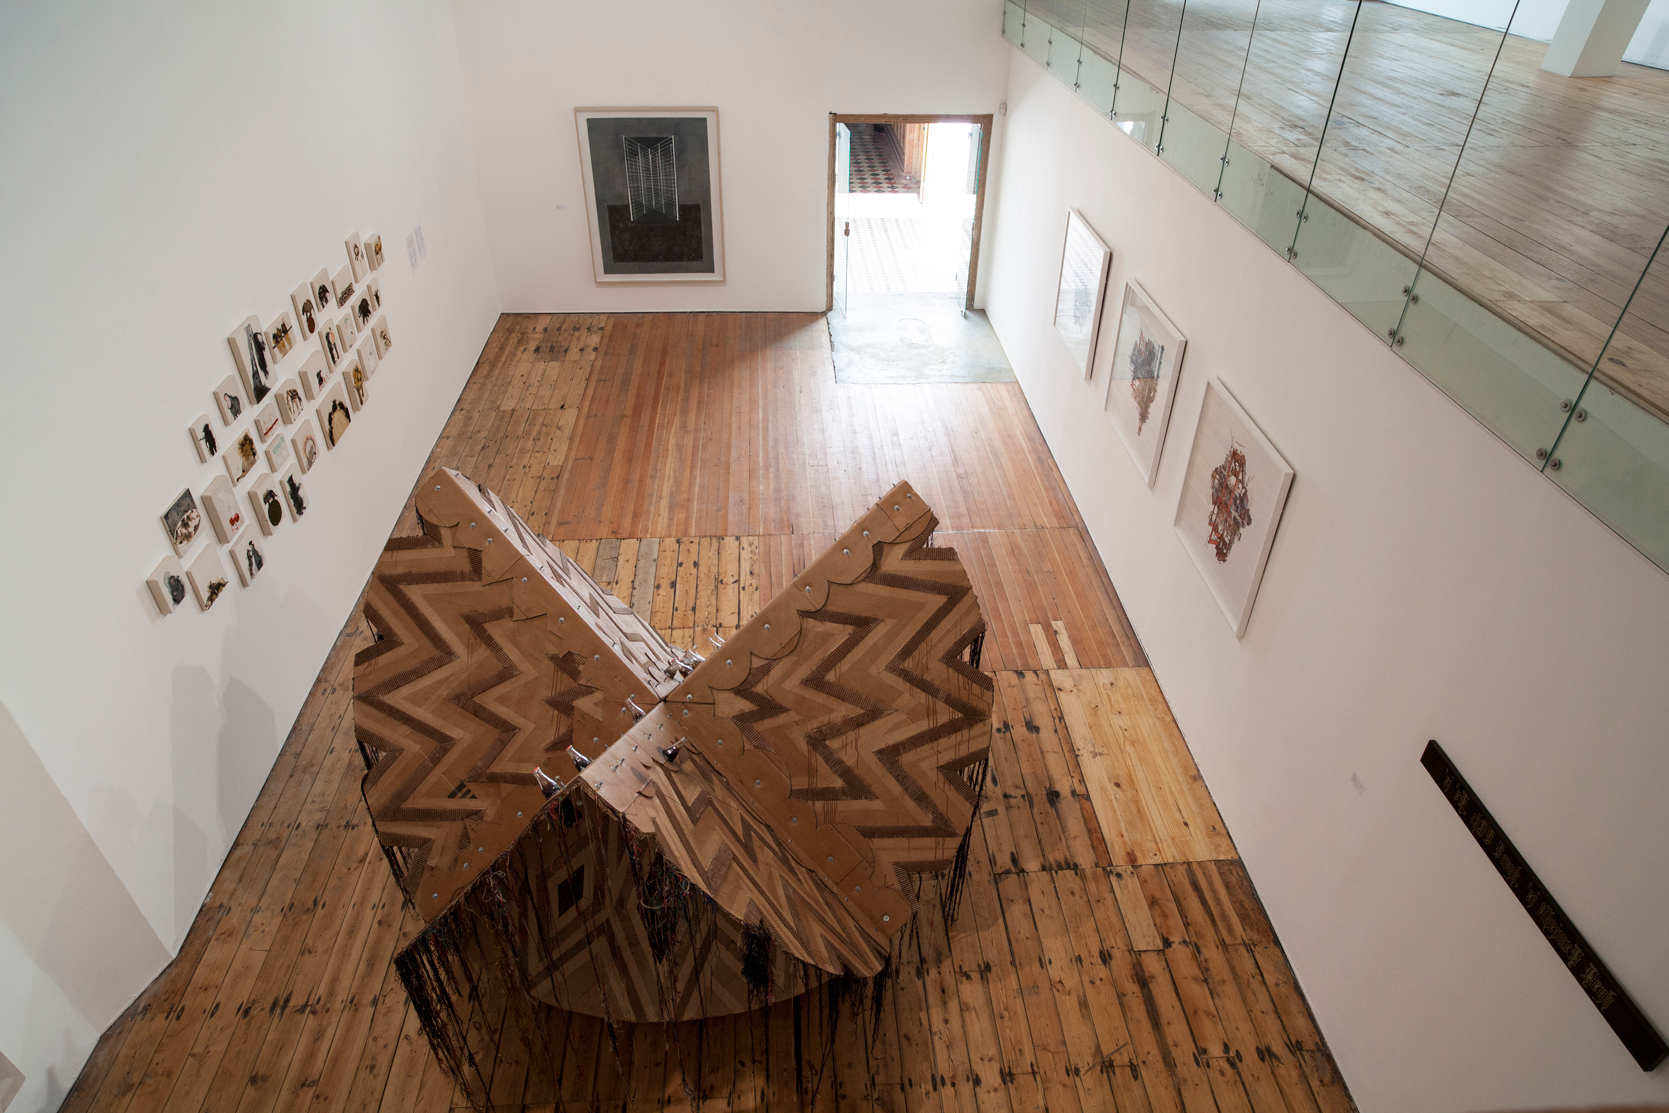 Installation view, Simeon Nelson & Moffat Takadiwa (collaboration), 'All Our Ancestors' (2014), Cardboard, bolts, thread, bottles, 260 x 260 x 200cm